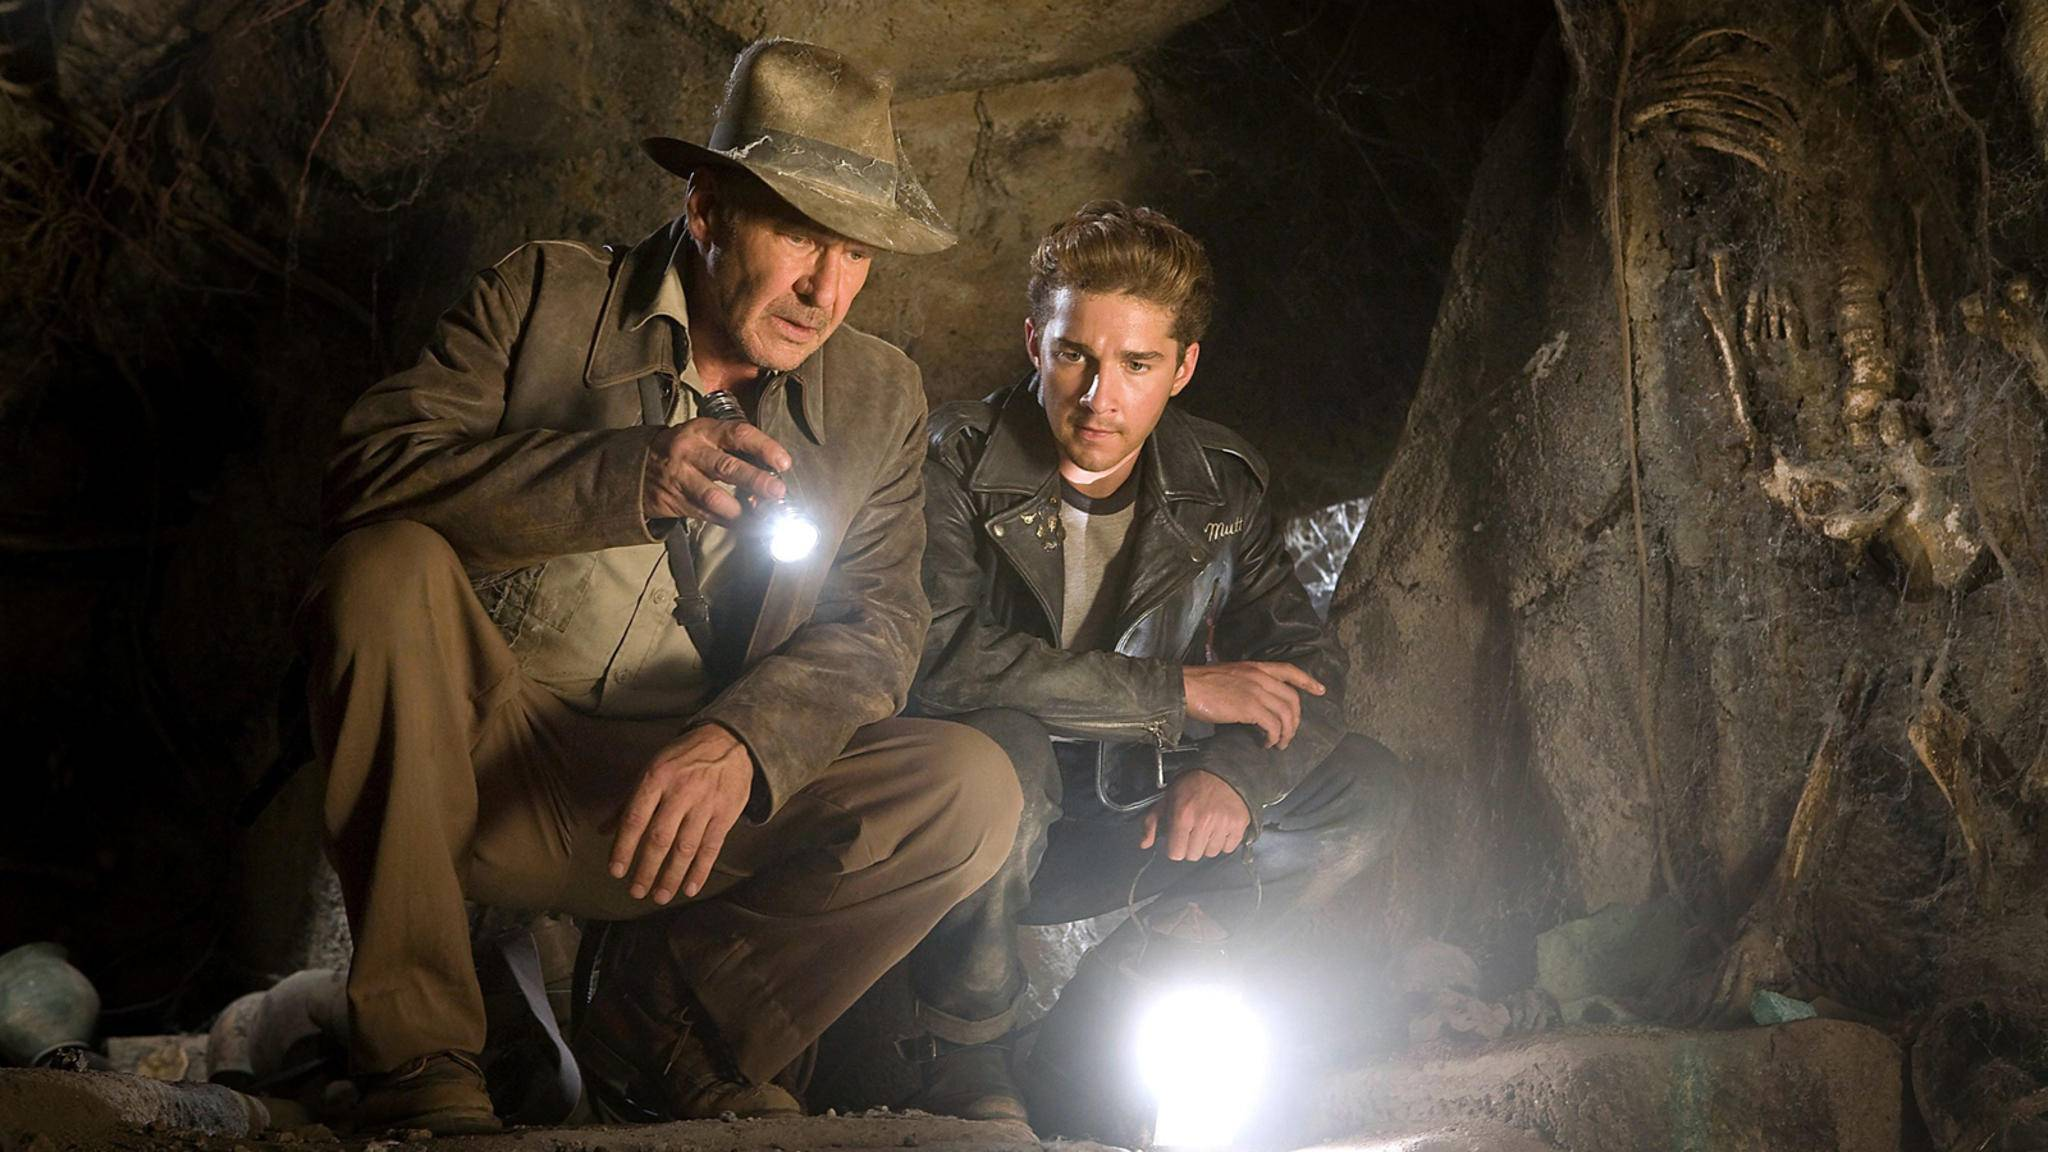 https://www.turn-on.de/media/cache/article_images/media/cms/2017/09/Indiana-Jones-picture-alliance-Everett-Collection-93357728.jpg